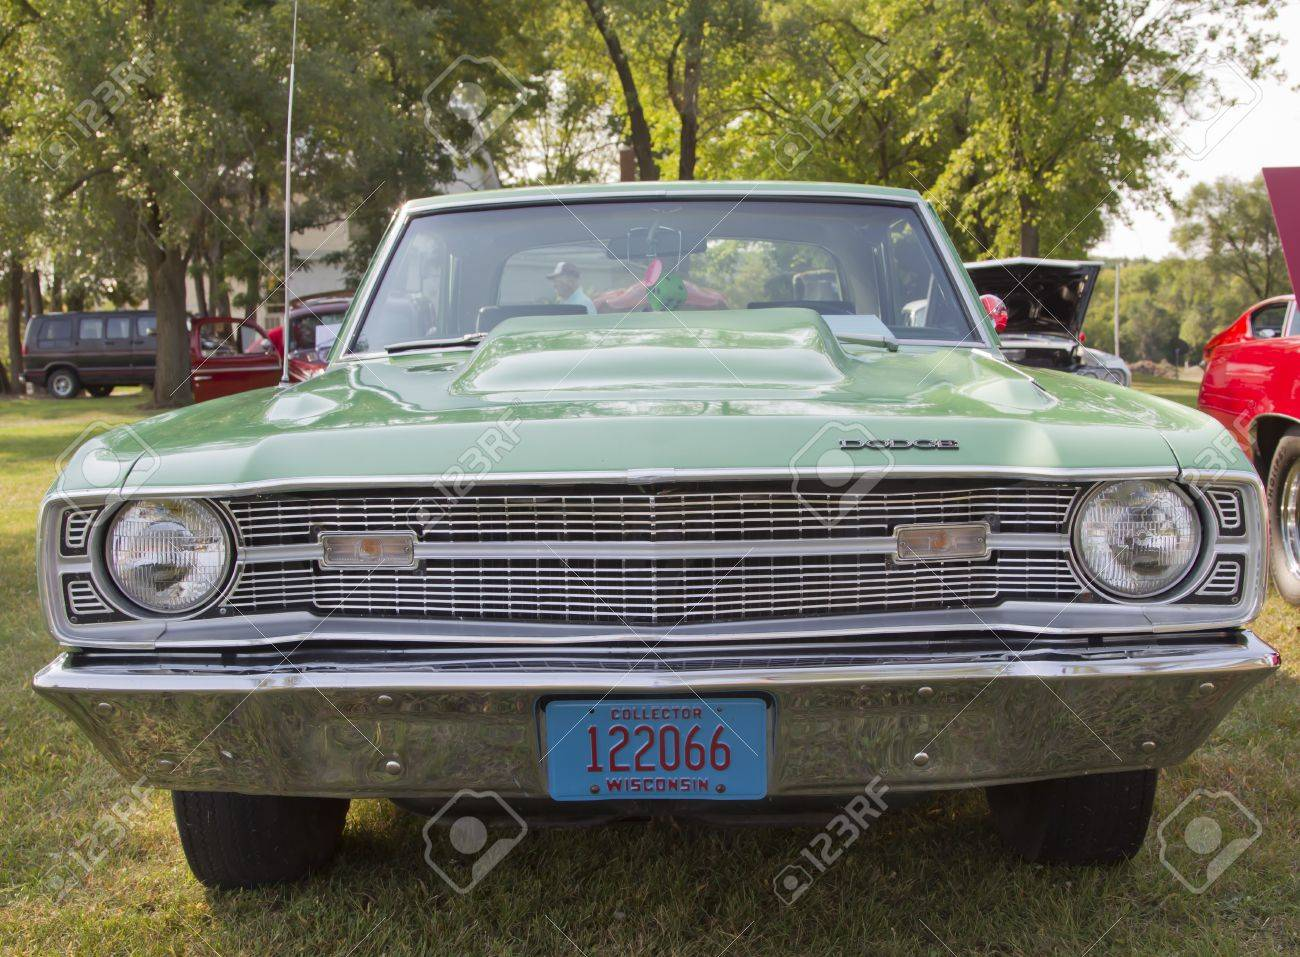 Marion Wi September 16 Front Of 1969 Dodge Dart Car At The Stock Photo Picture And Royalty Free Image Image 15486165